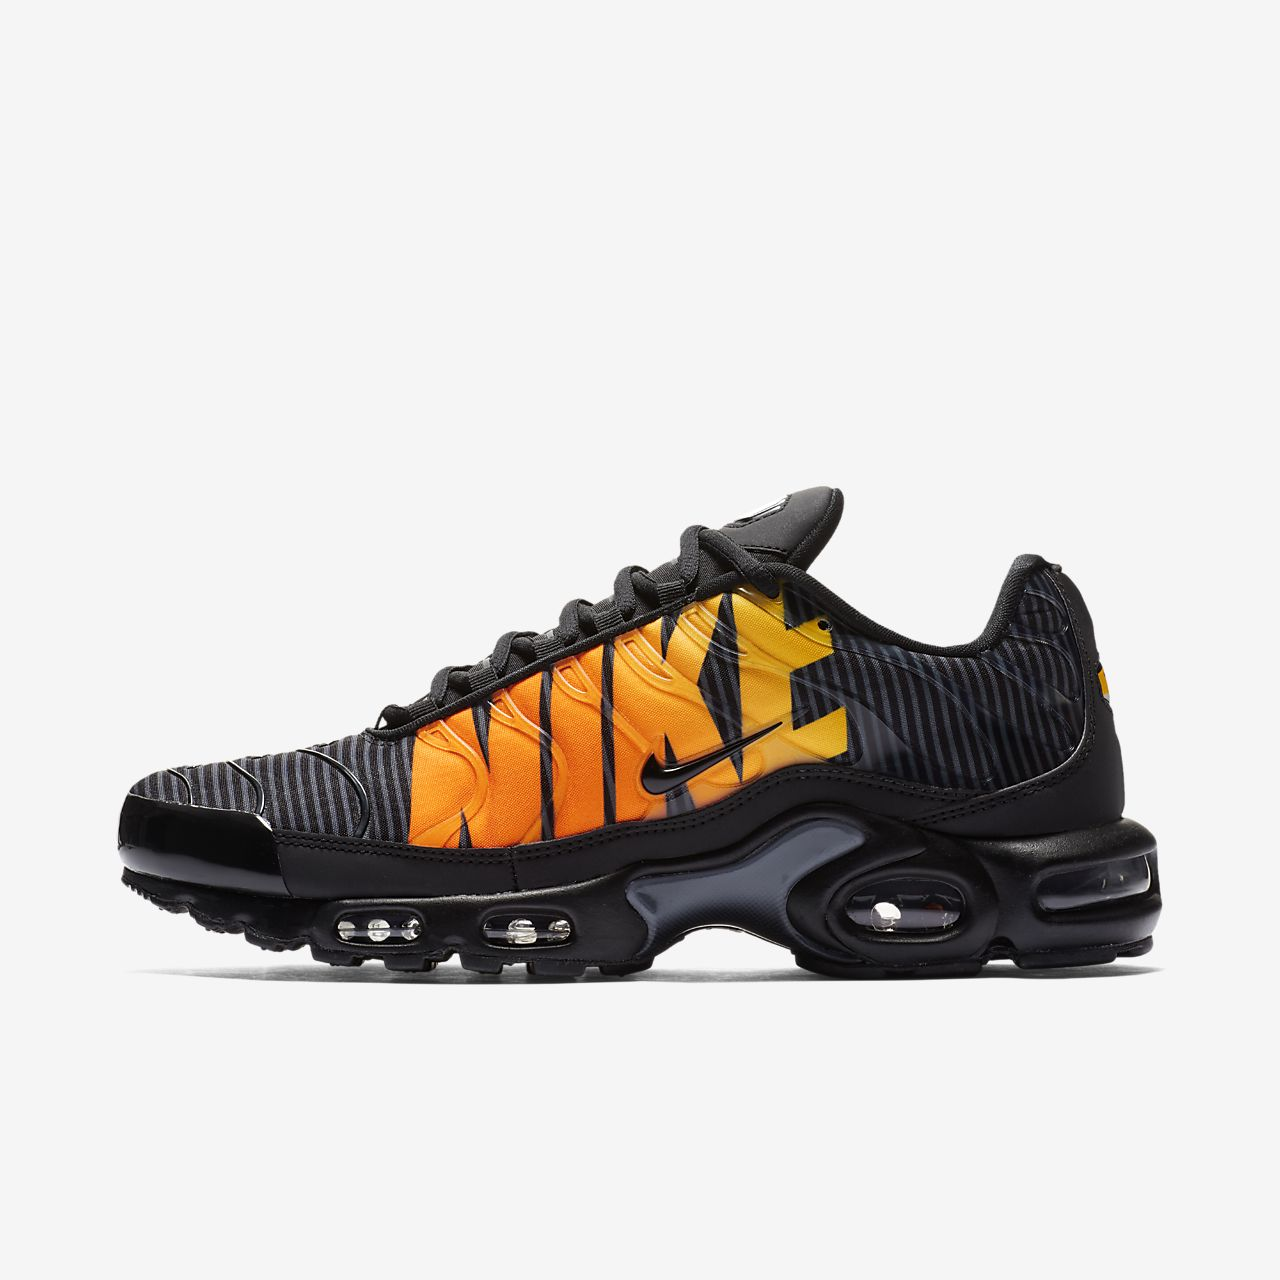 nike air tn nere